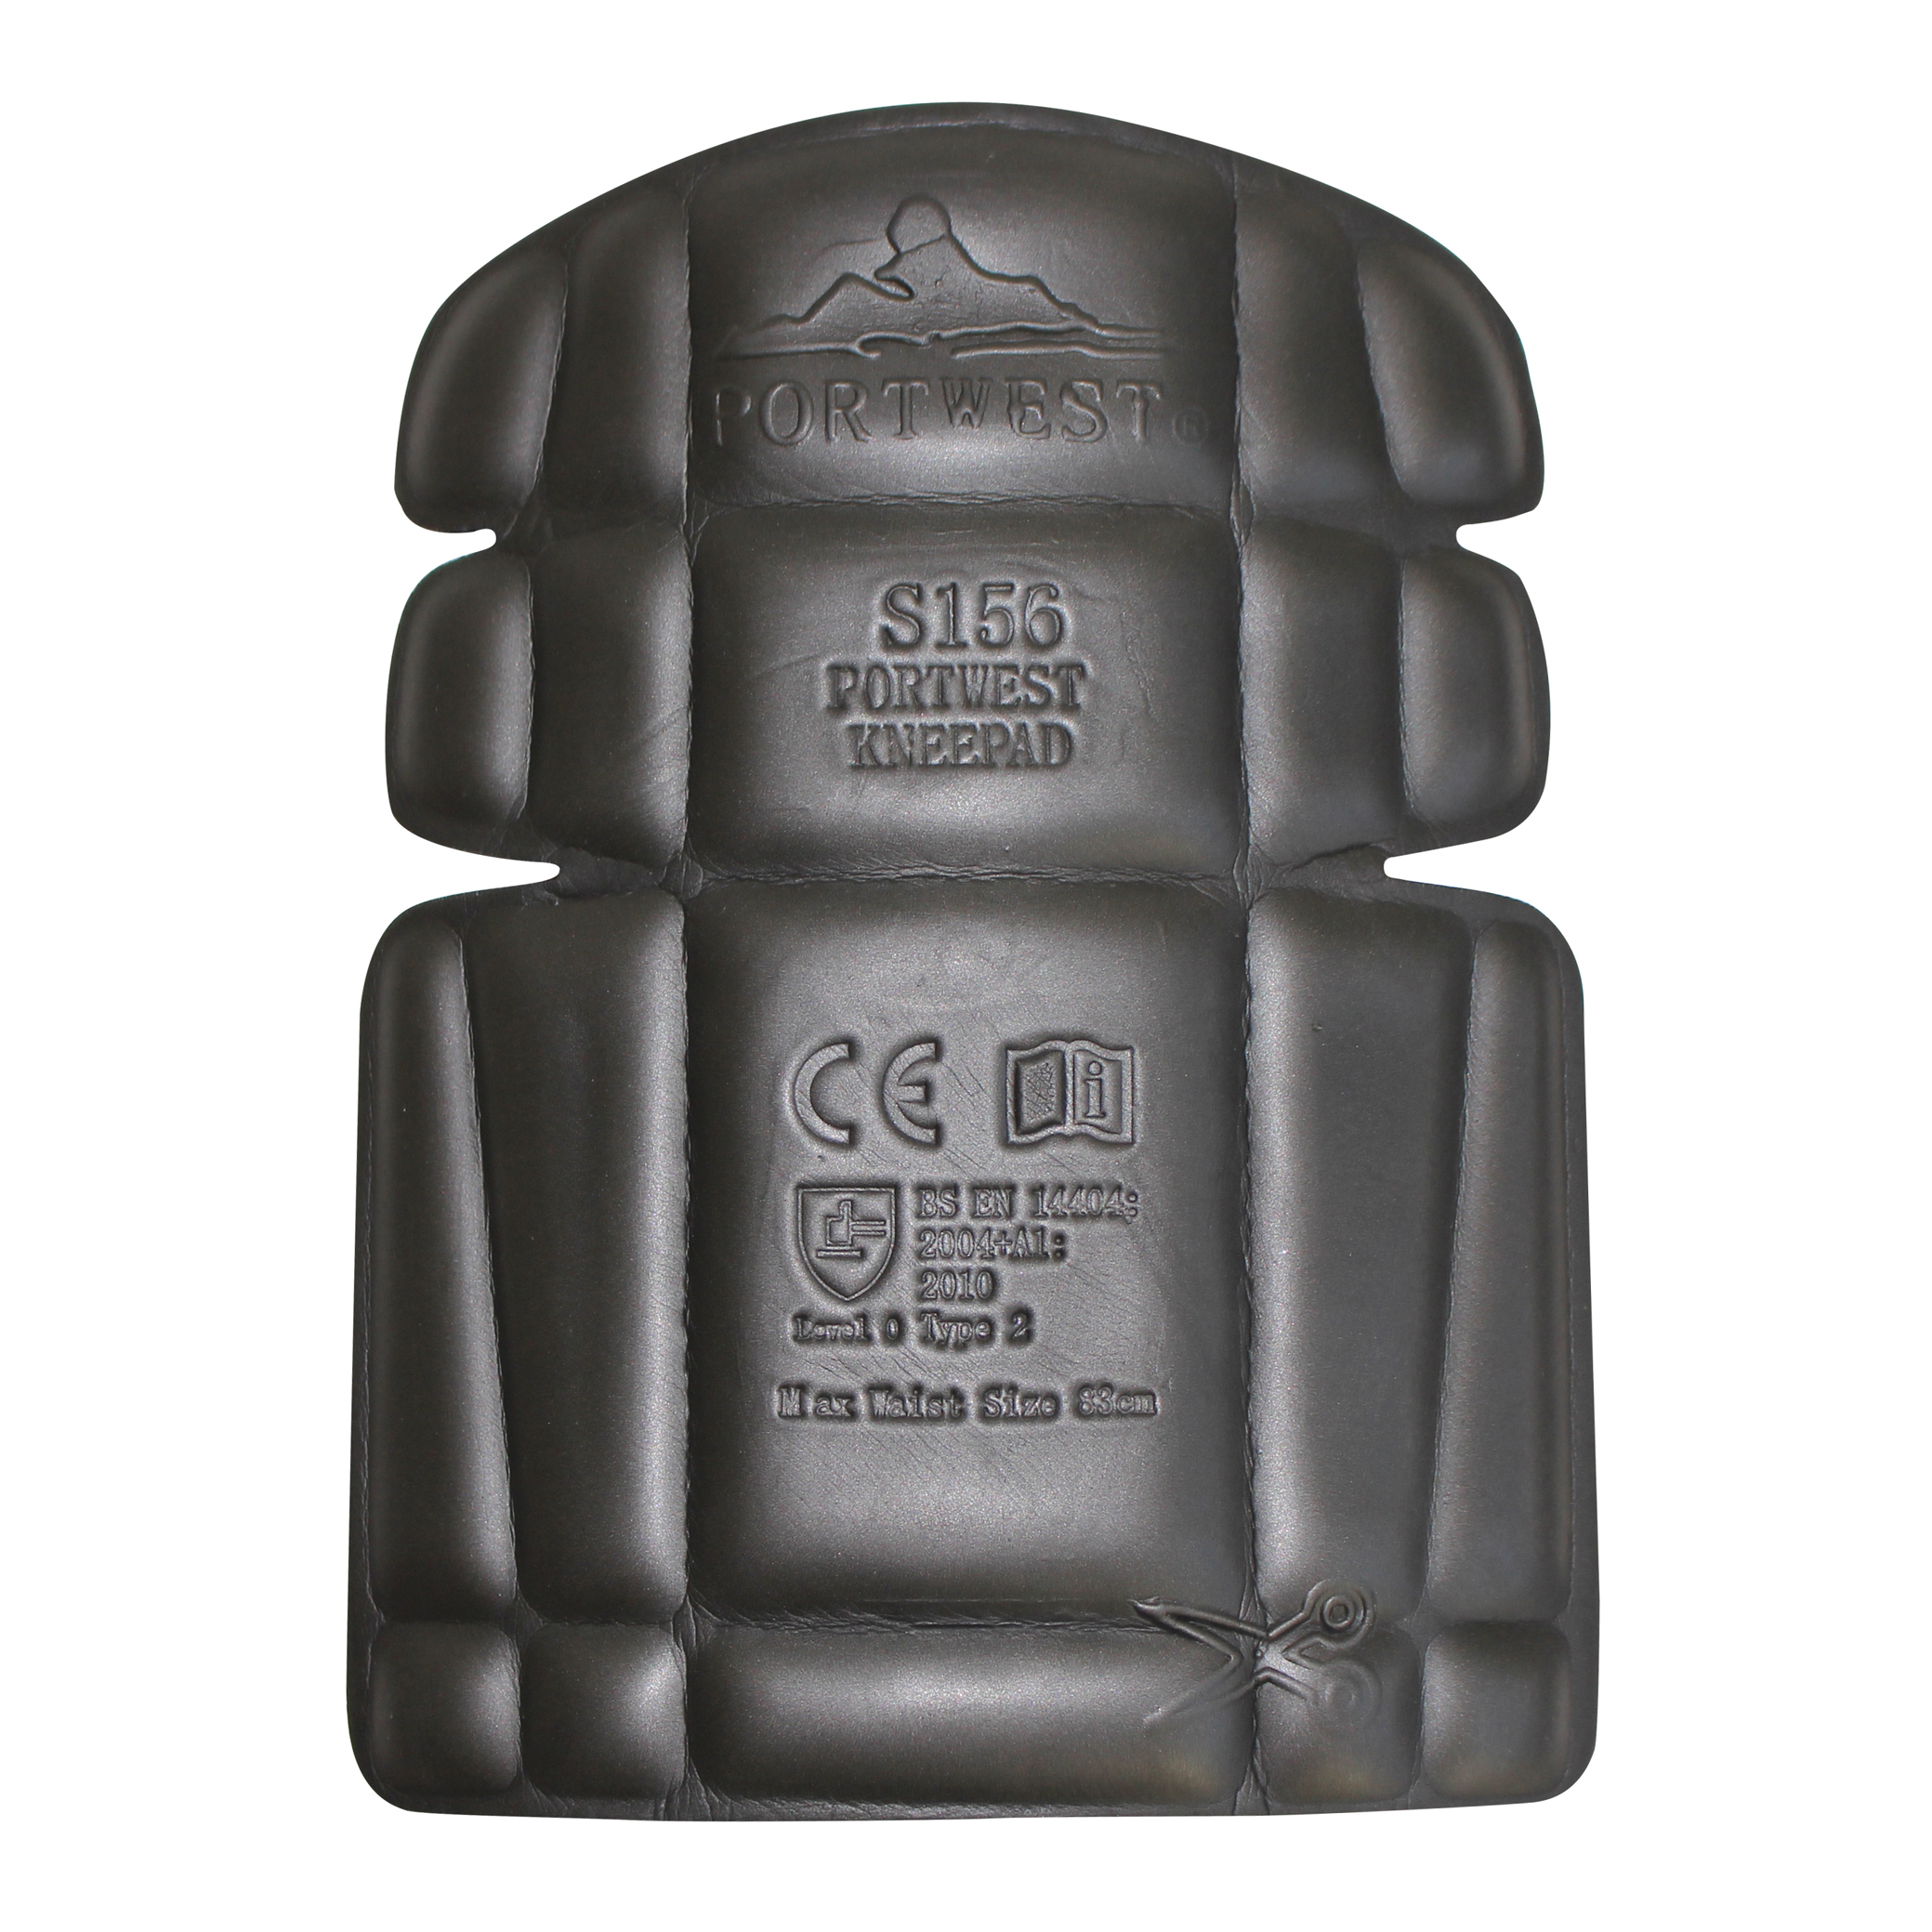 Portwest S156 Kneepad